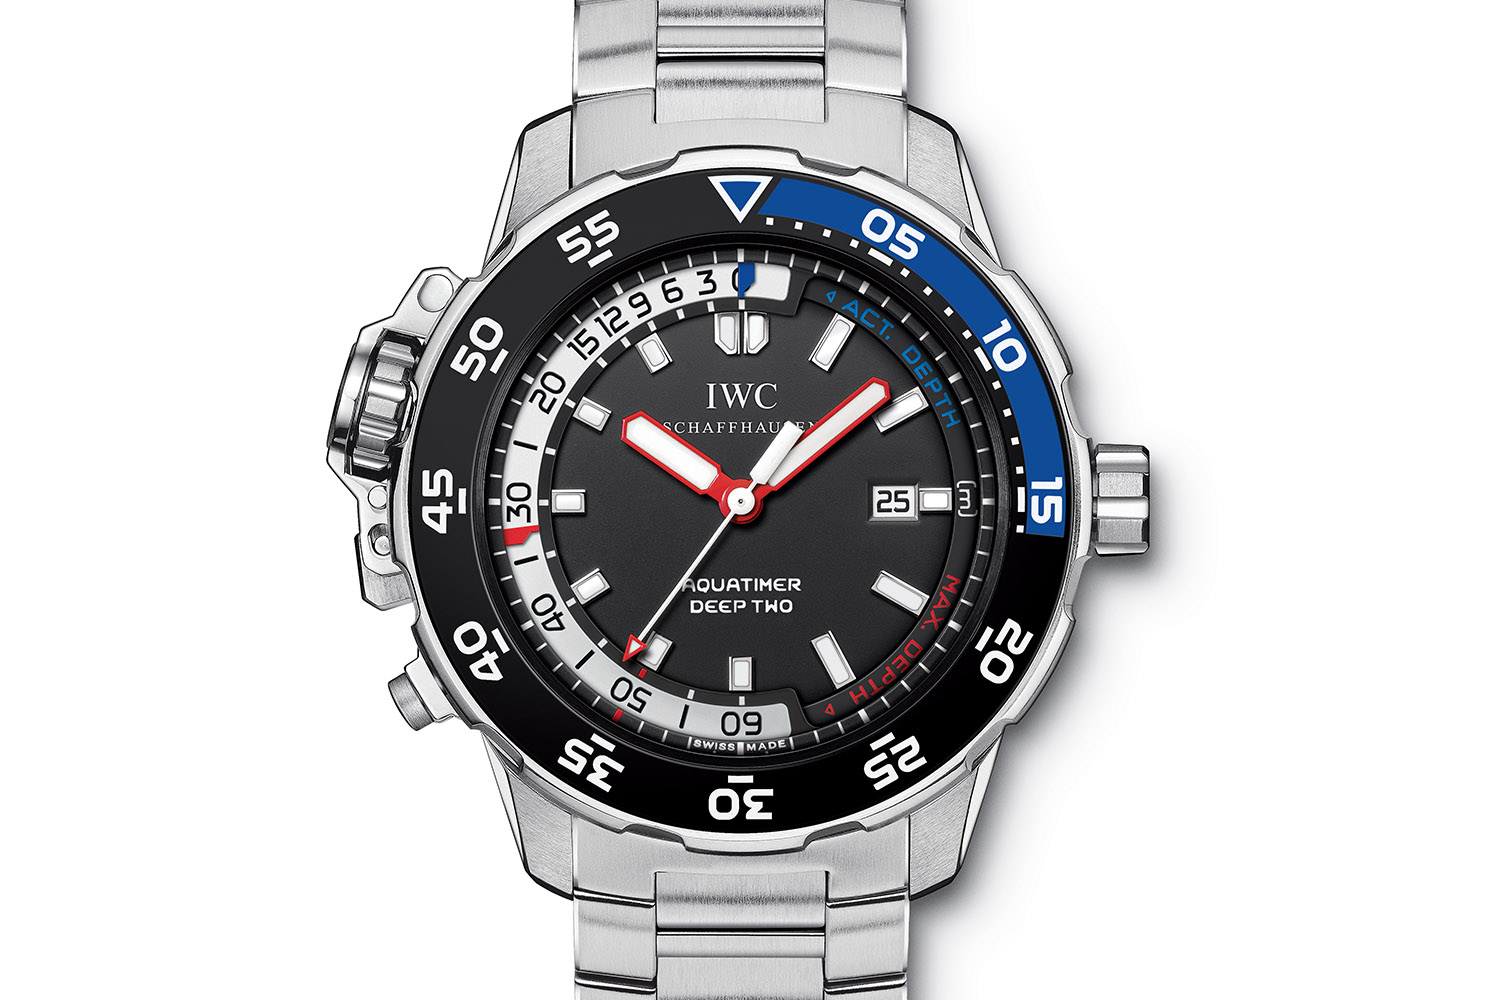 iwc_aquatimer-deep-two_ref-3547_2009